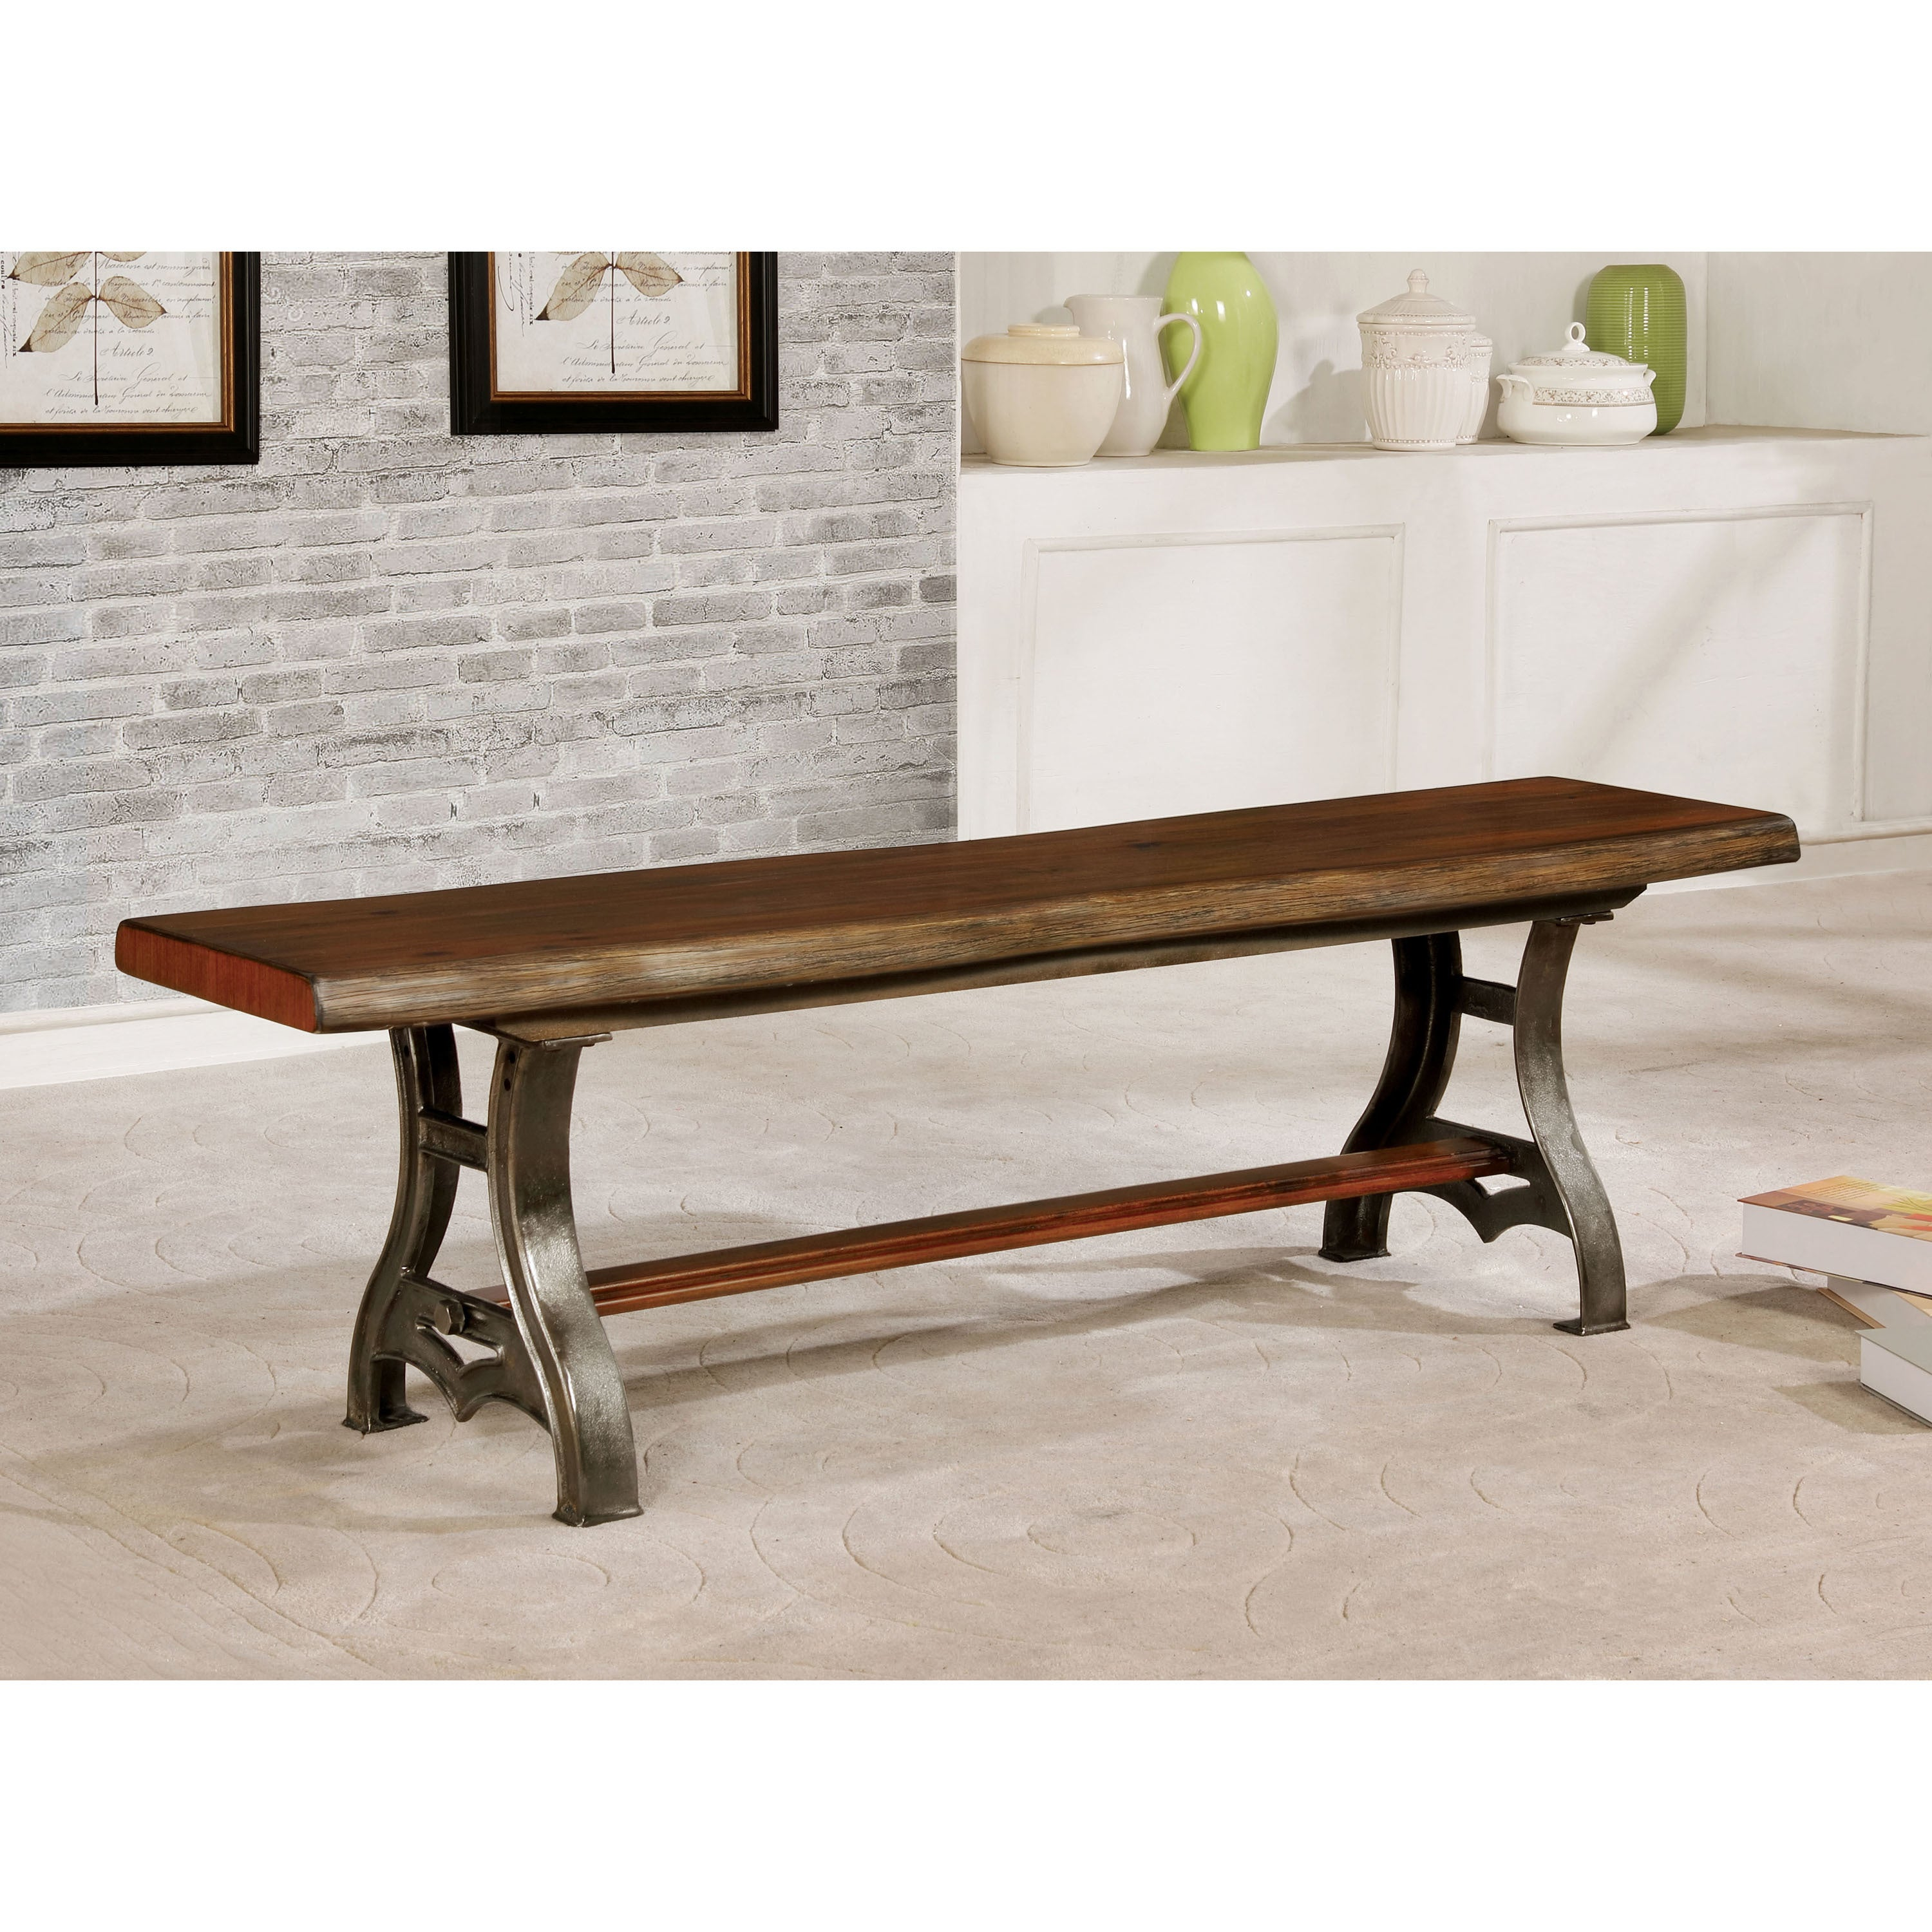 Superb Furniture Of America Roman Industrial Brown Cherry Live Edge Dining Bench    Free Shipping Today   Overstock   25813109